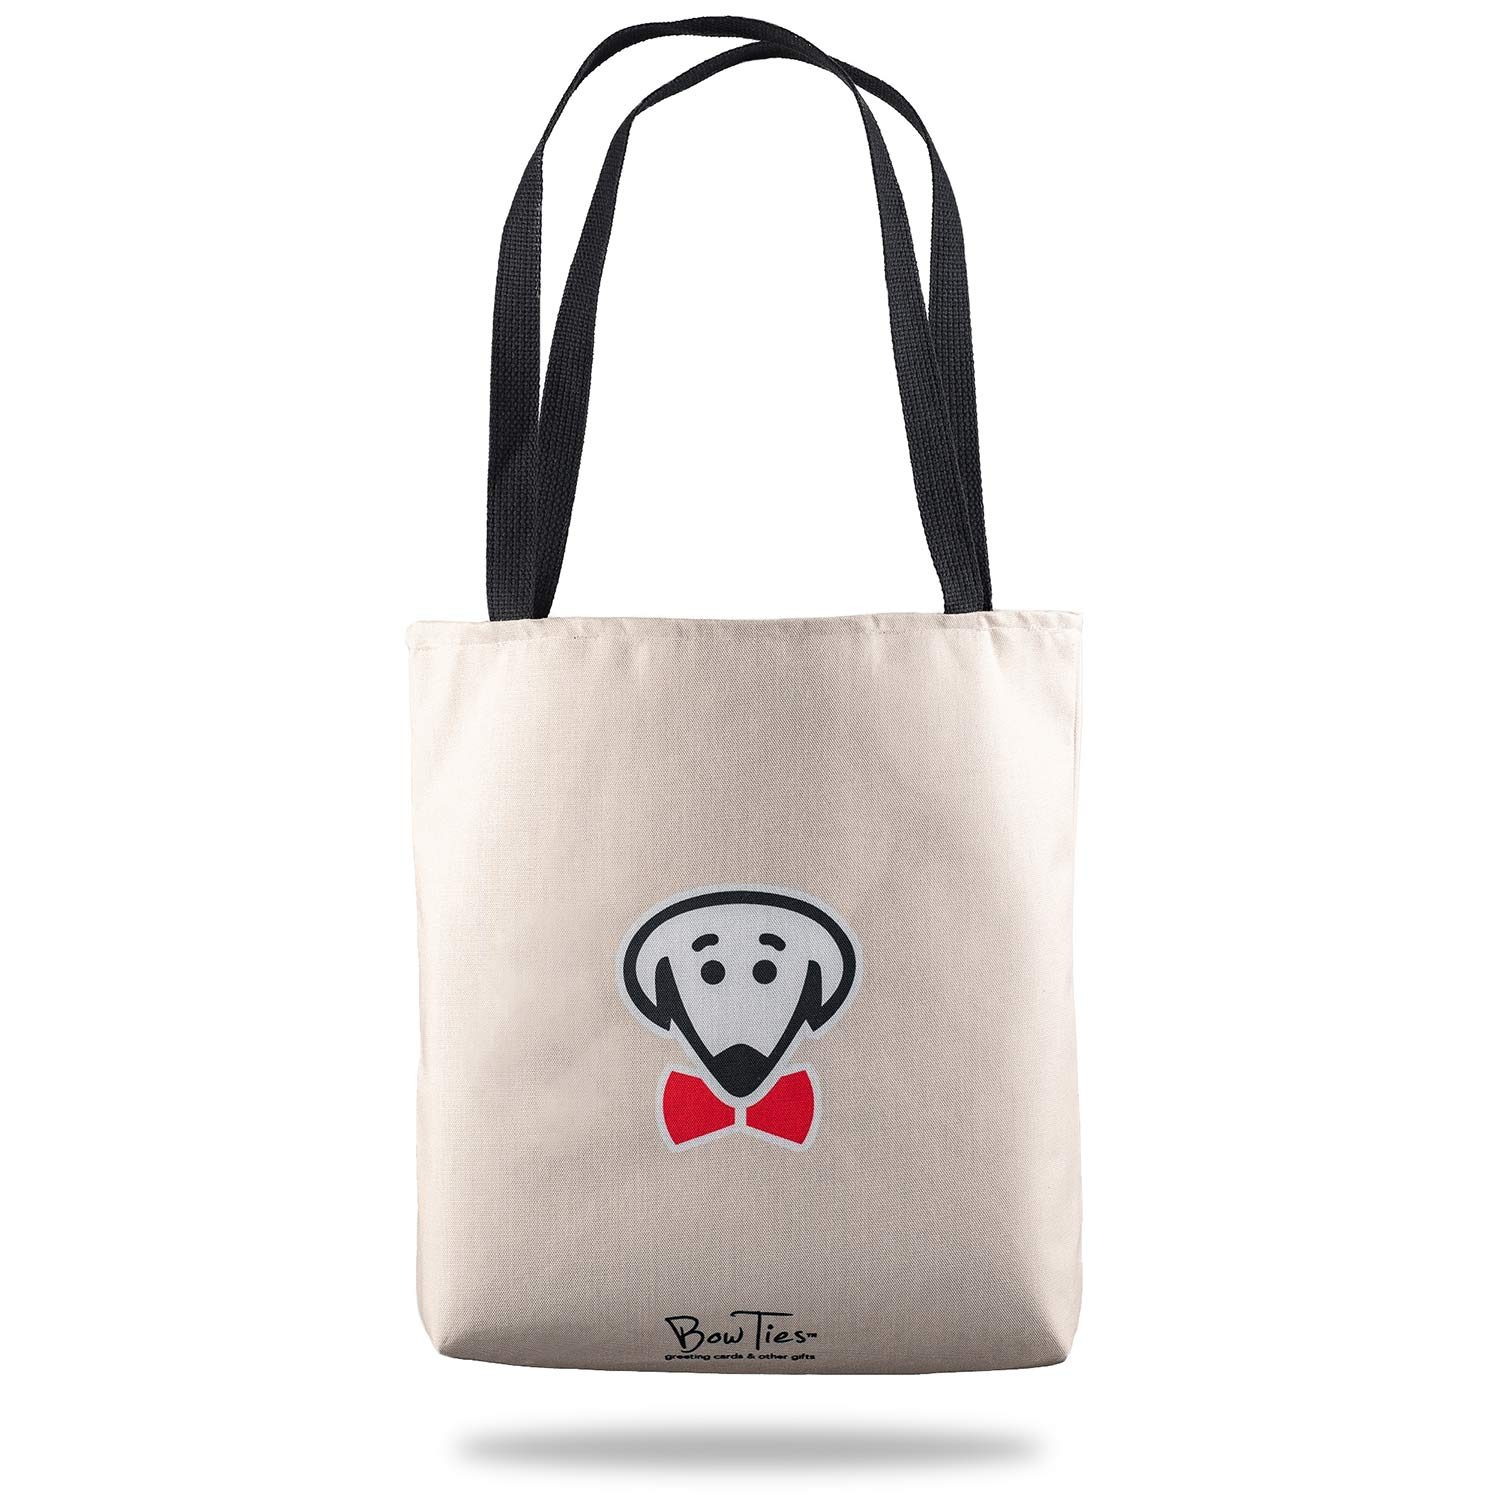 'A.D.D.' Tote by Beau Tyler in tan